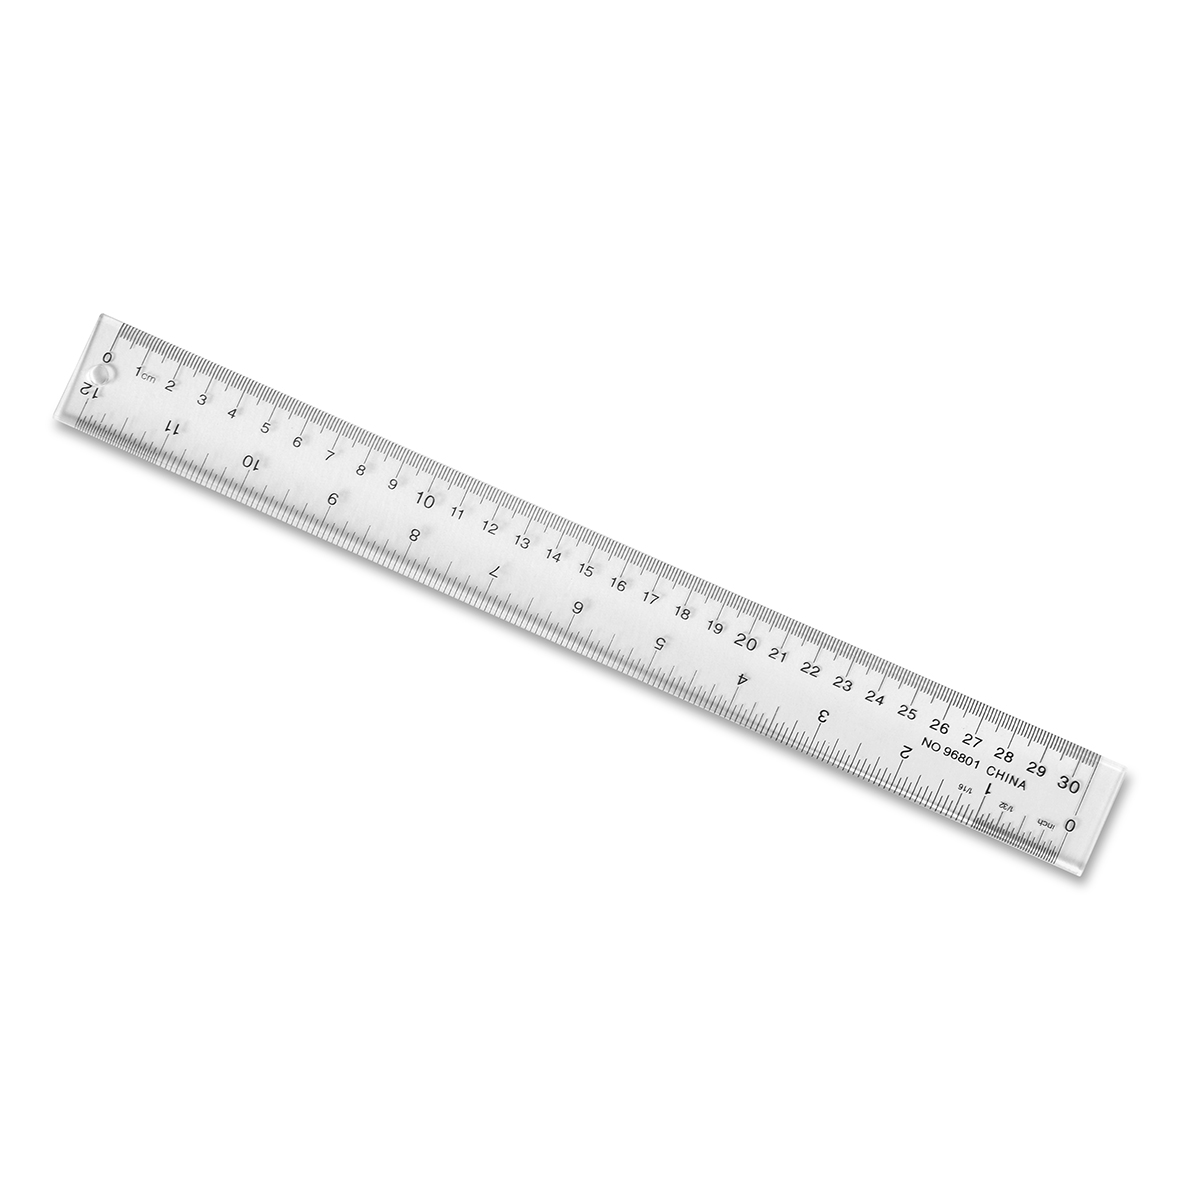 Plastic Ruler 12 CM & Inches Clear - Product Details